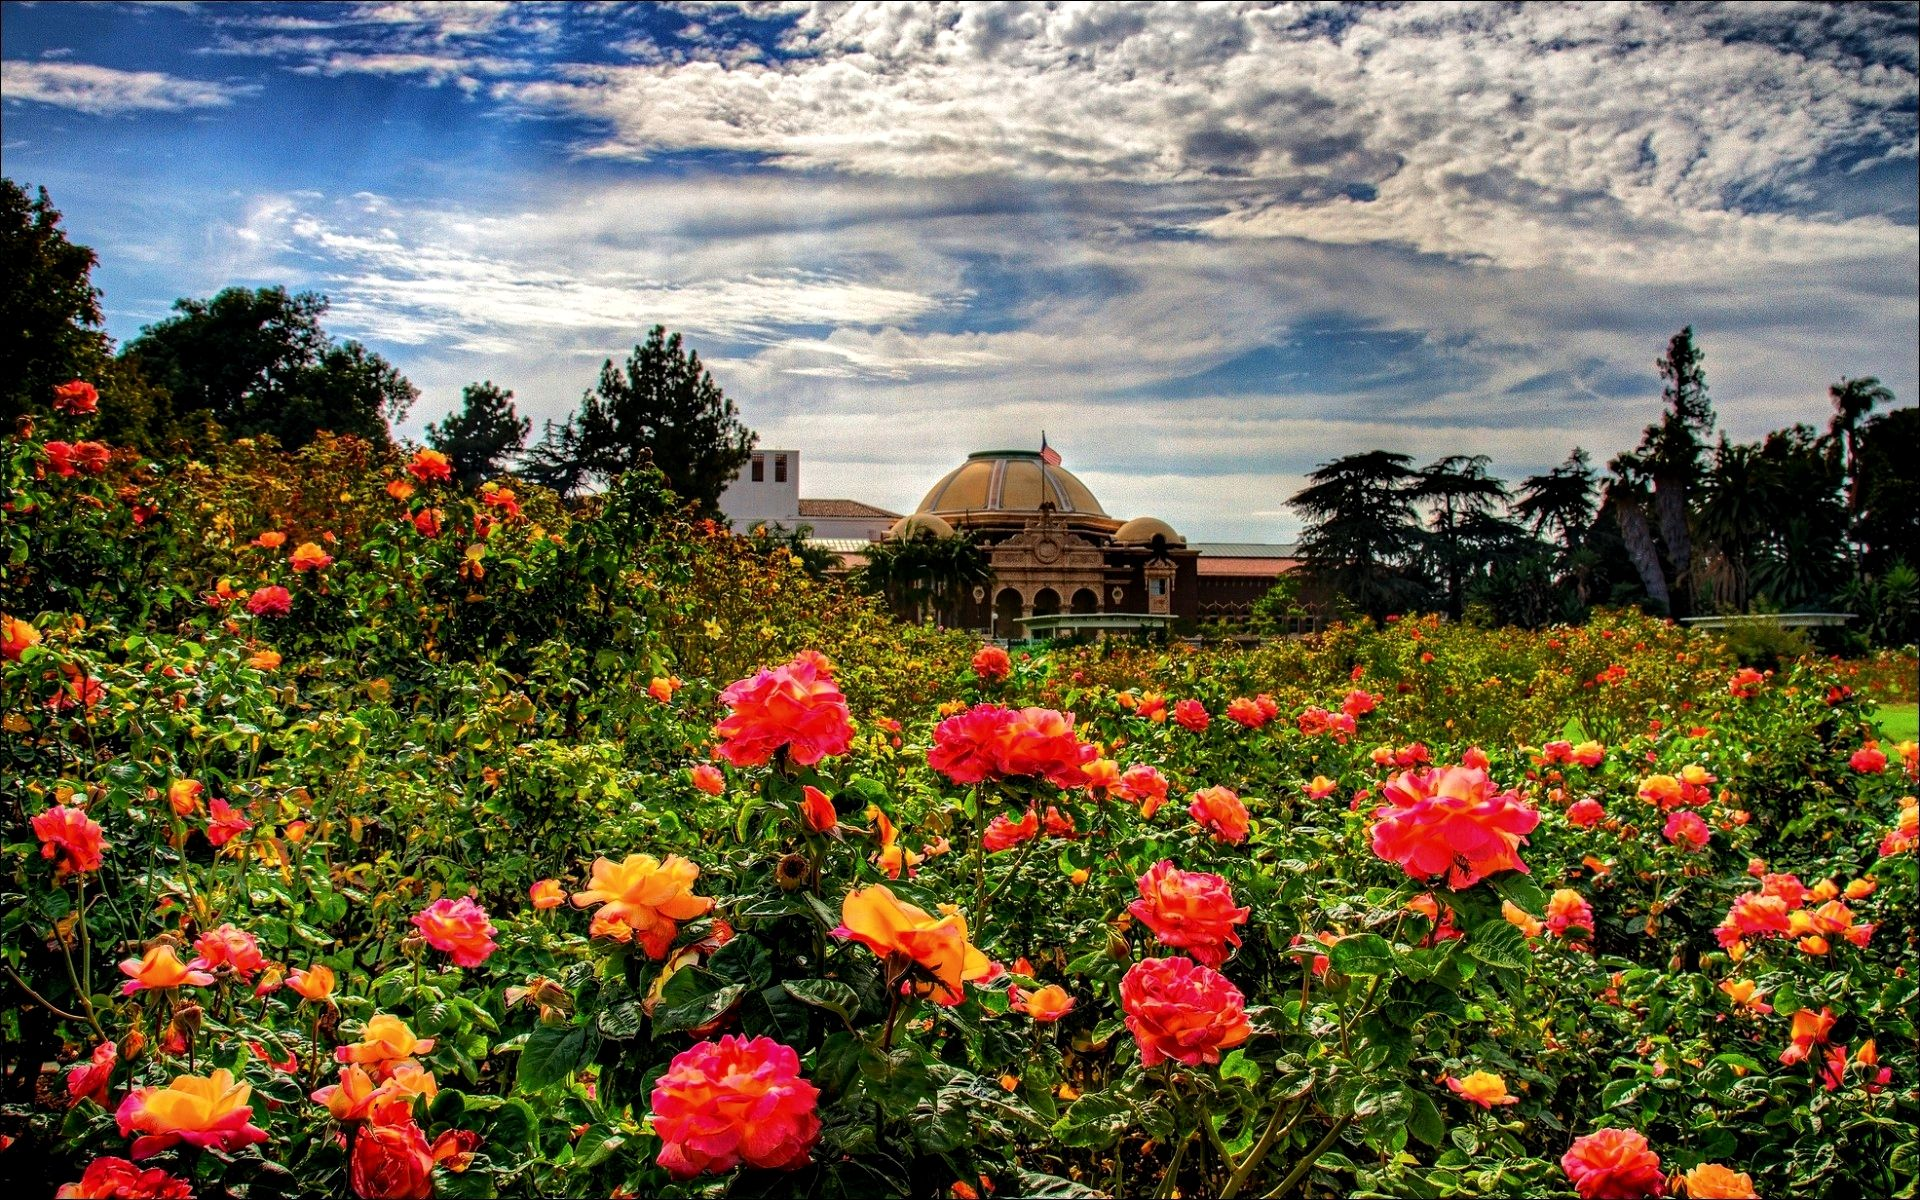 Rose Garden Hd Wallpaper 1080p Full Pics Desktop Hoontoidly Of ...